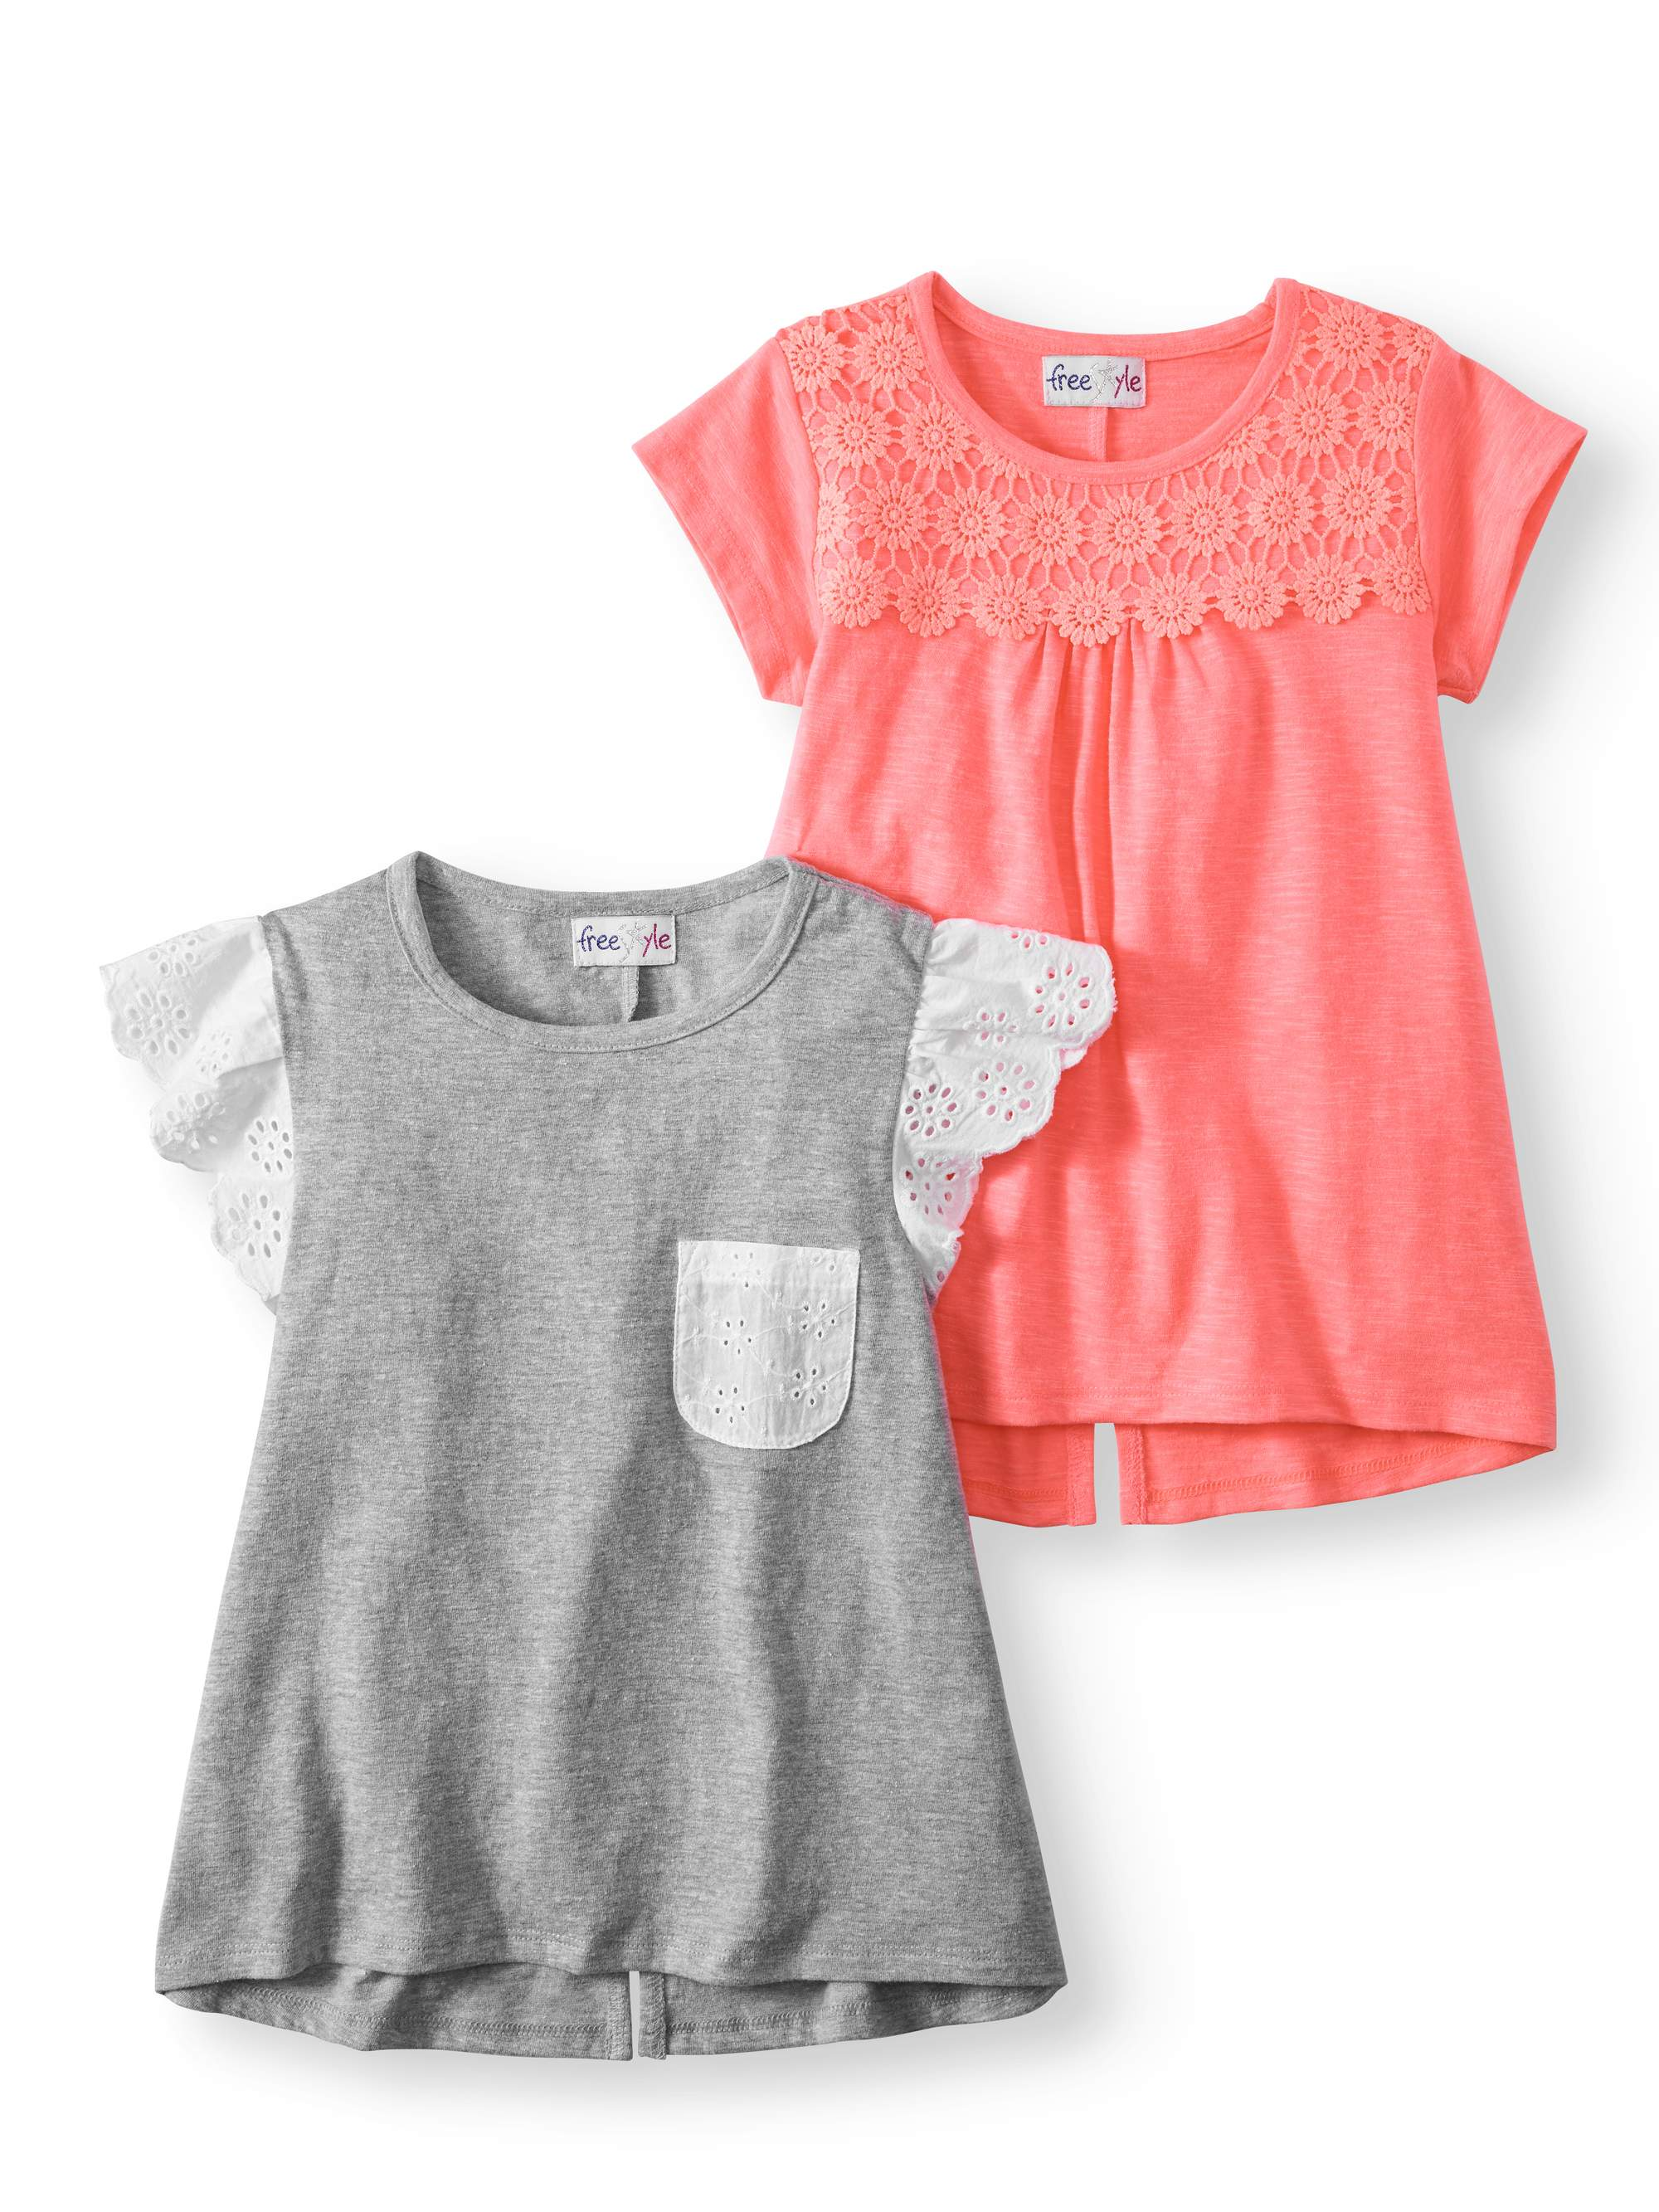 Girls' Lace and Crochet T-shirt 2-Pack Set